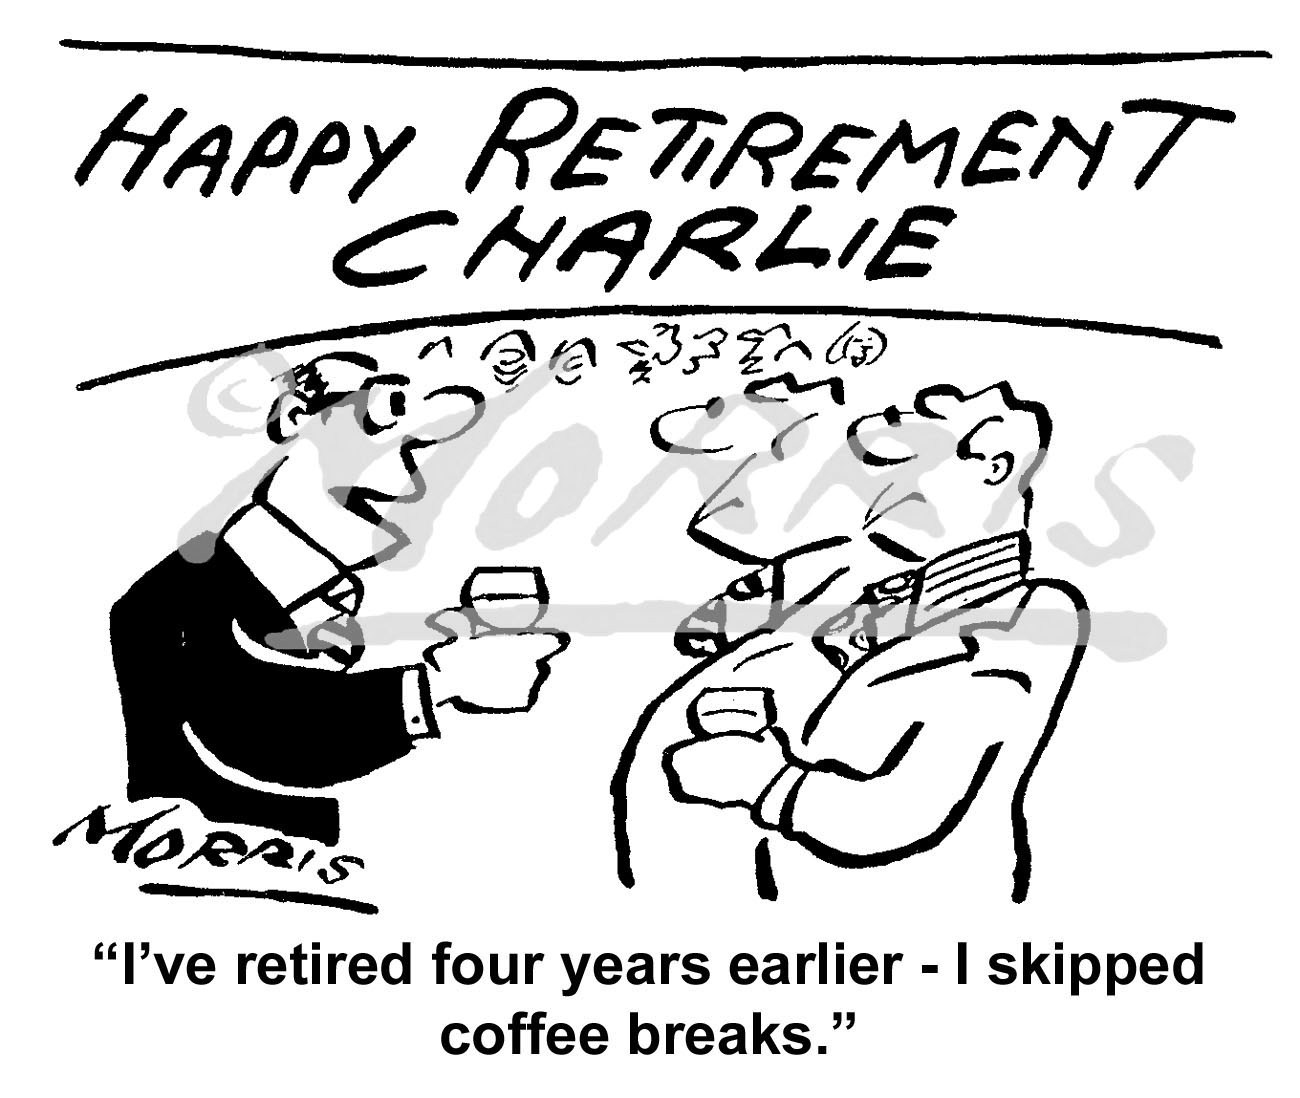 Early retirement business cartoon – Ref: 6198bw